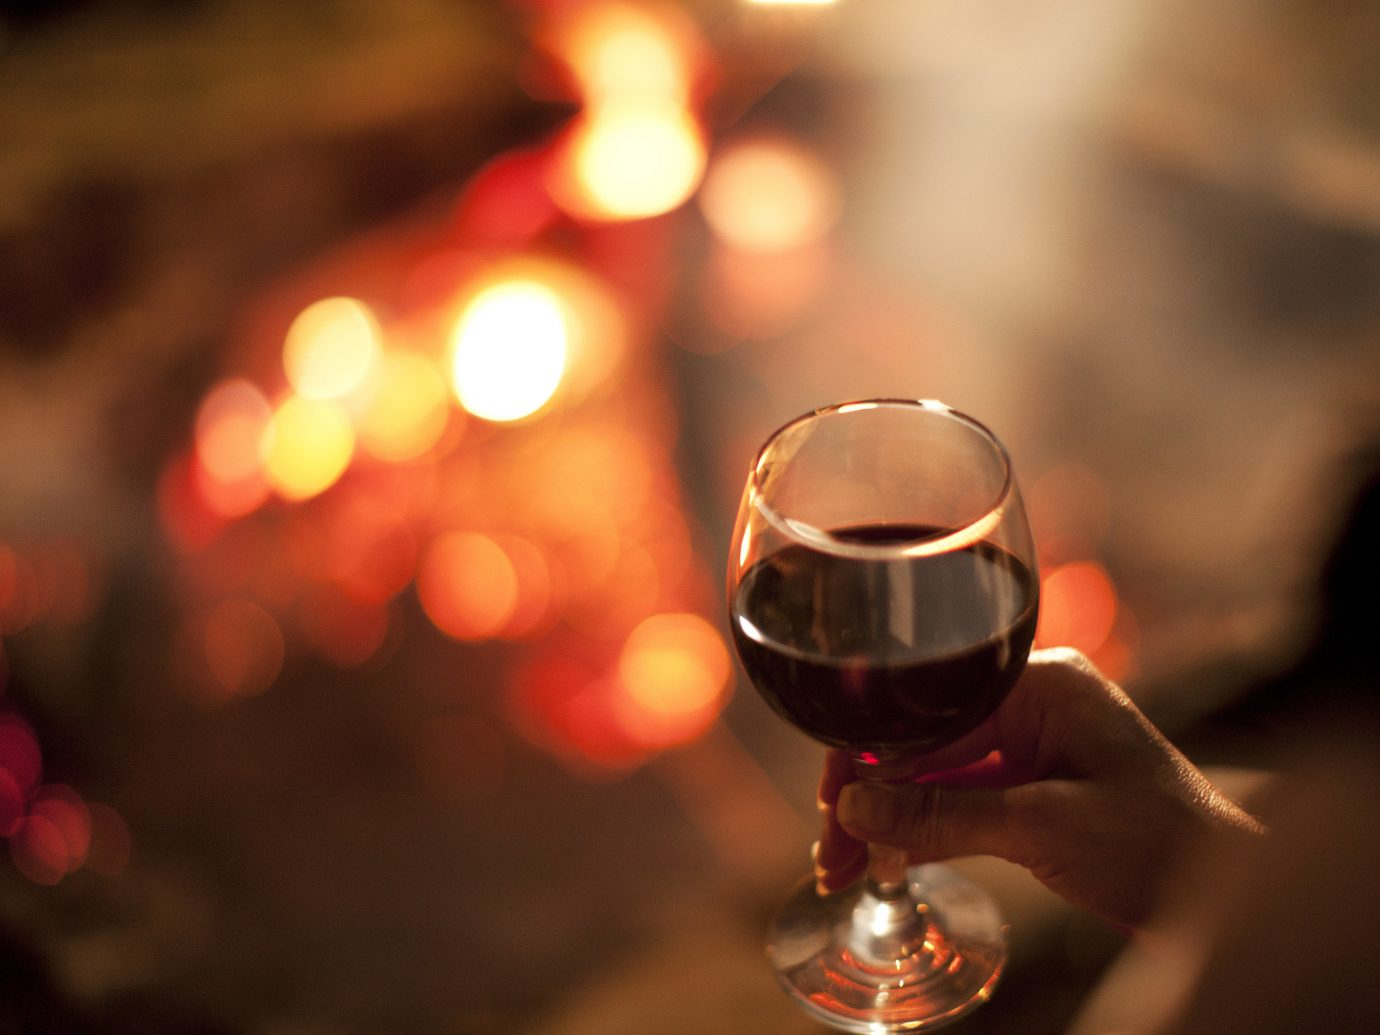 Health + Wellness Hotels Spa Retreats person indoor color red light alcoholic beverage Drink darkness night wine macro photography lighting wine glass blur